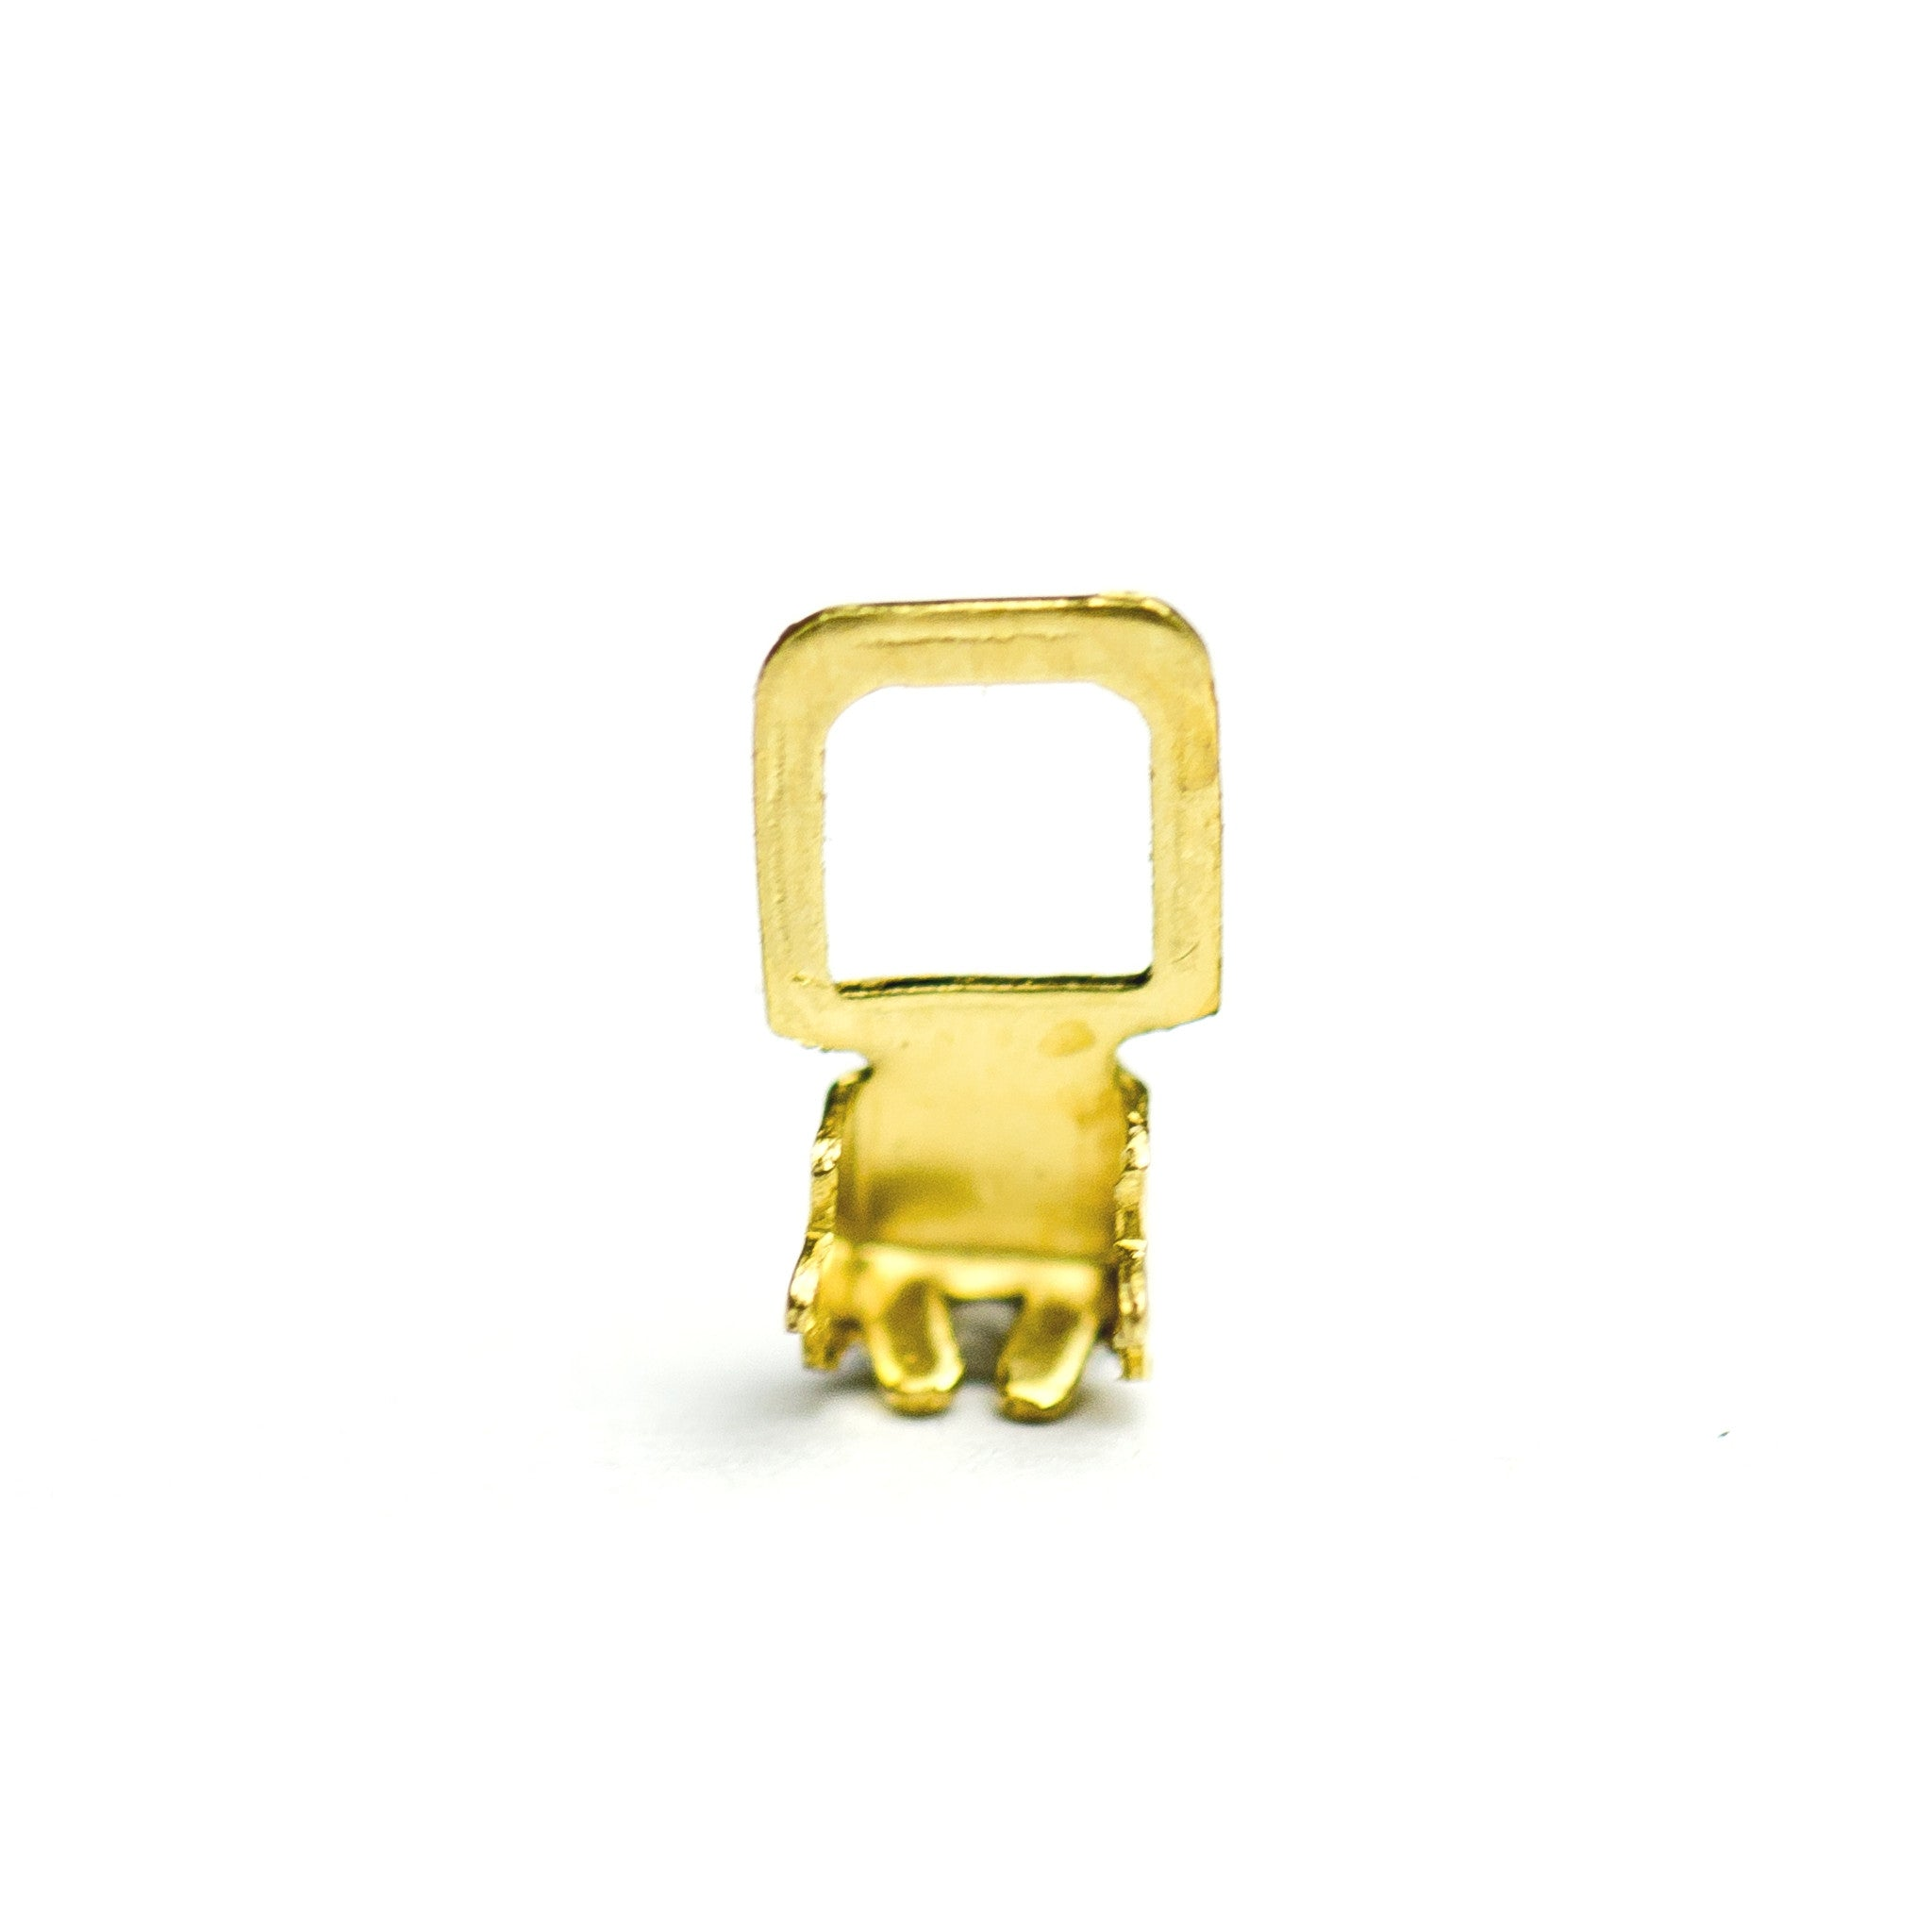 Pp18 Crimp Foldover Gold (36 pieces)